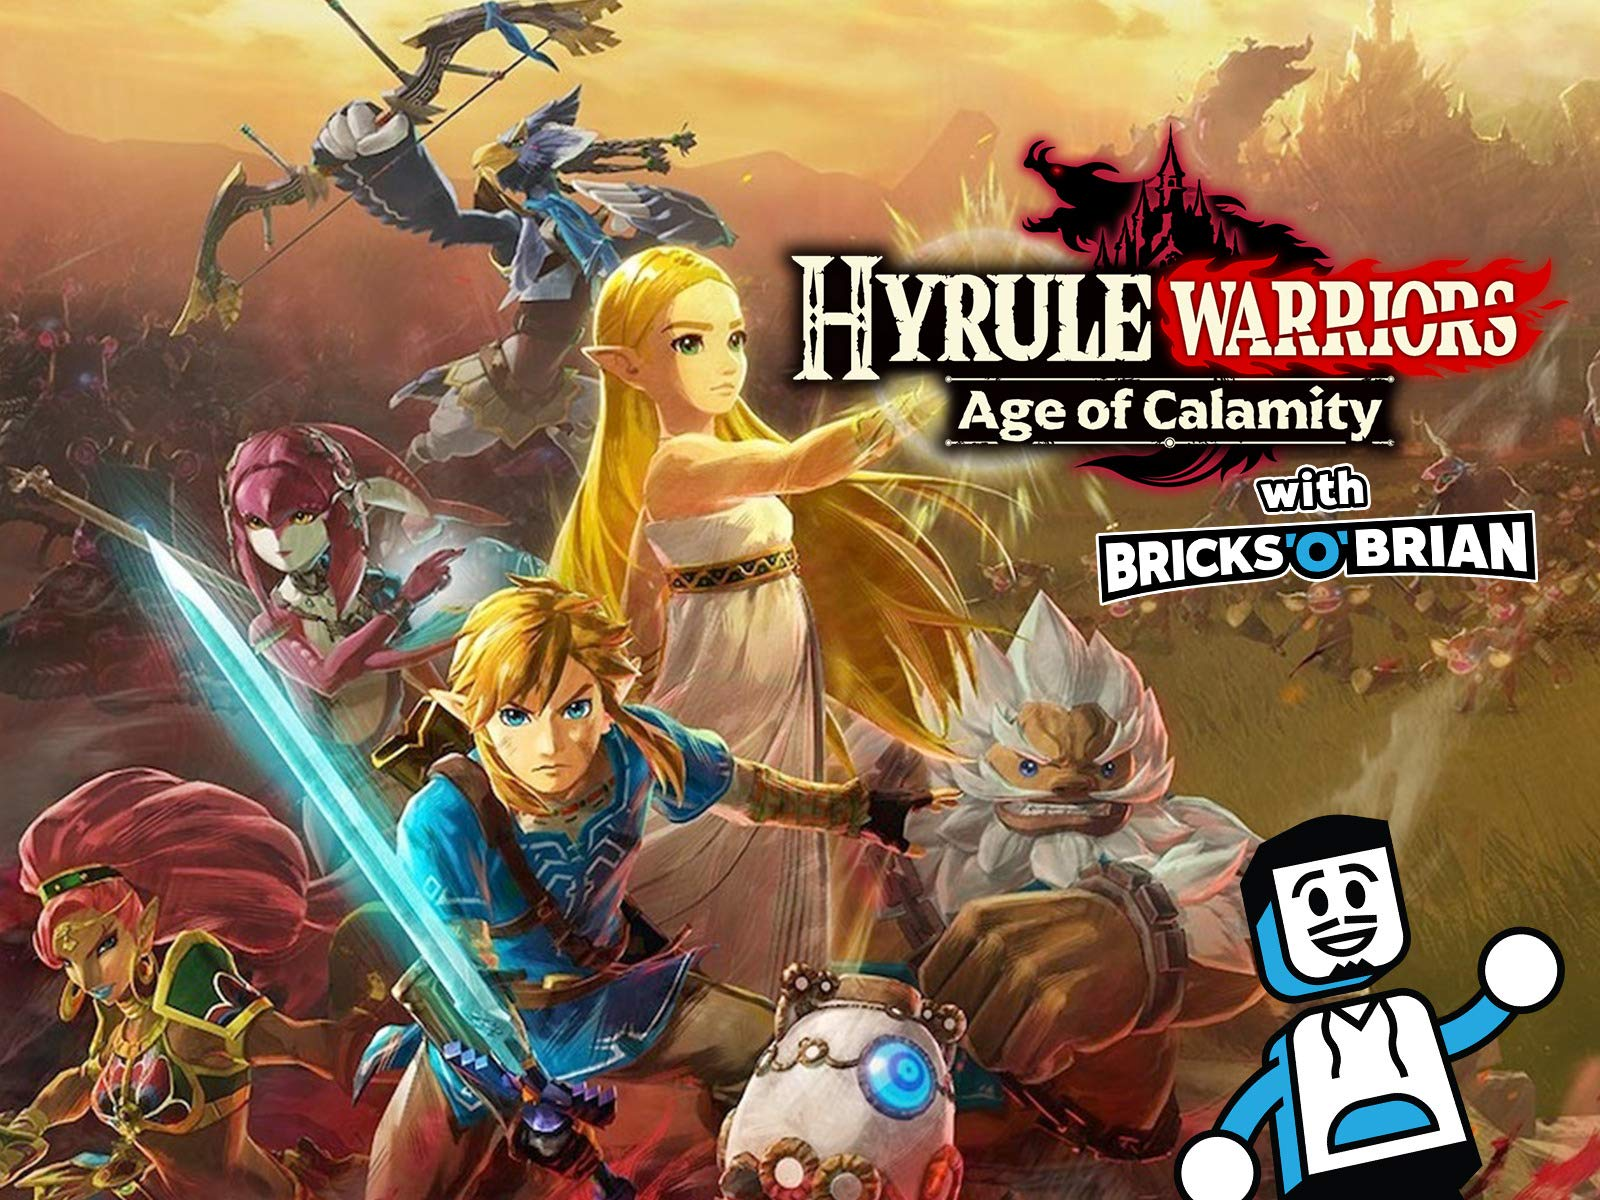 Clip: Hyrule Warriors: Age of Calamity with Bricks 'O' Brian! on Amazon Prime Video UK